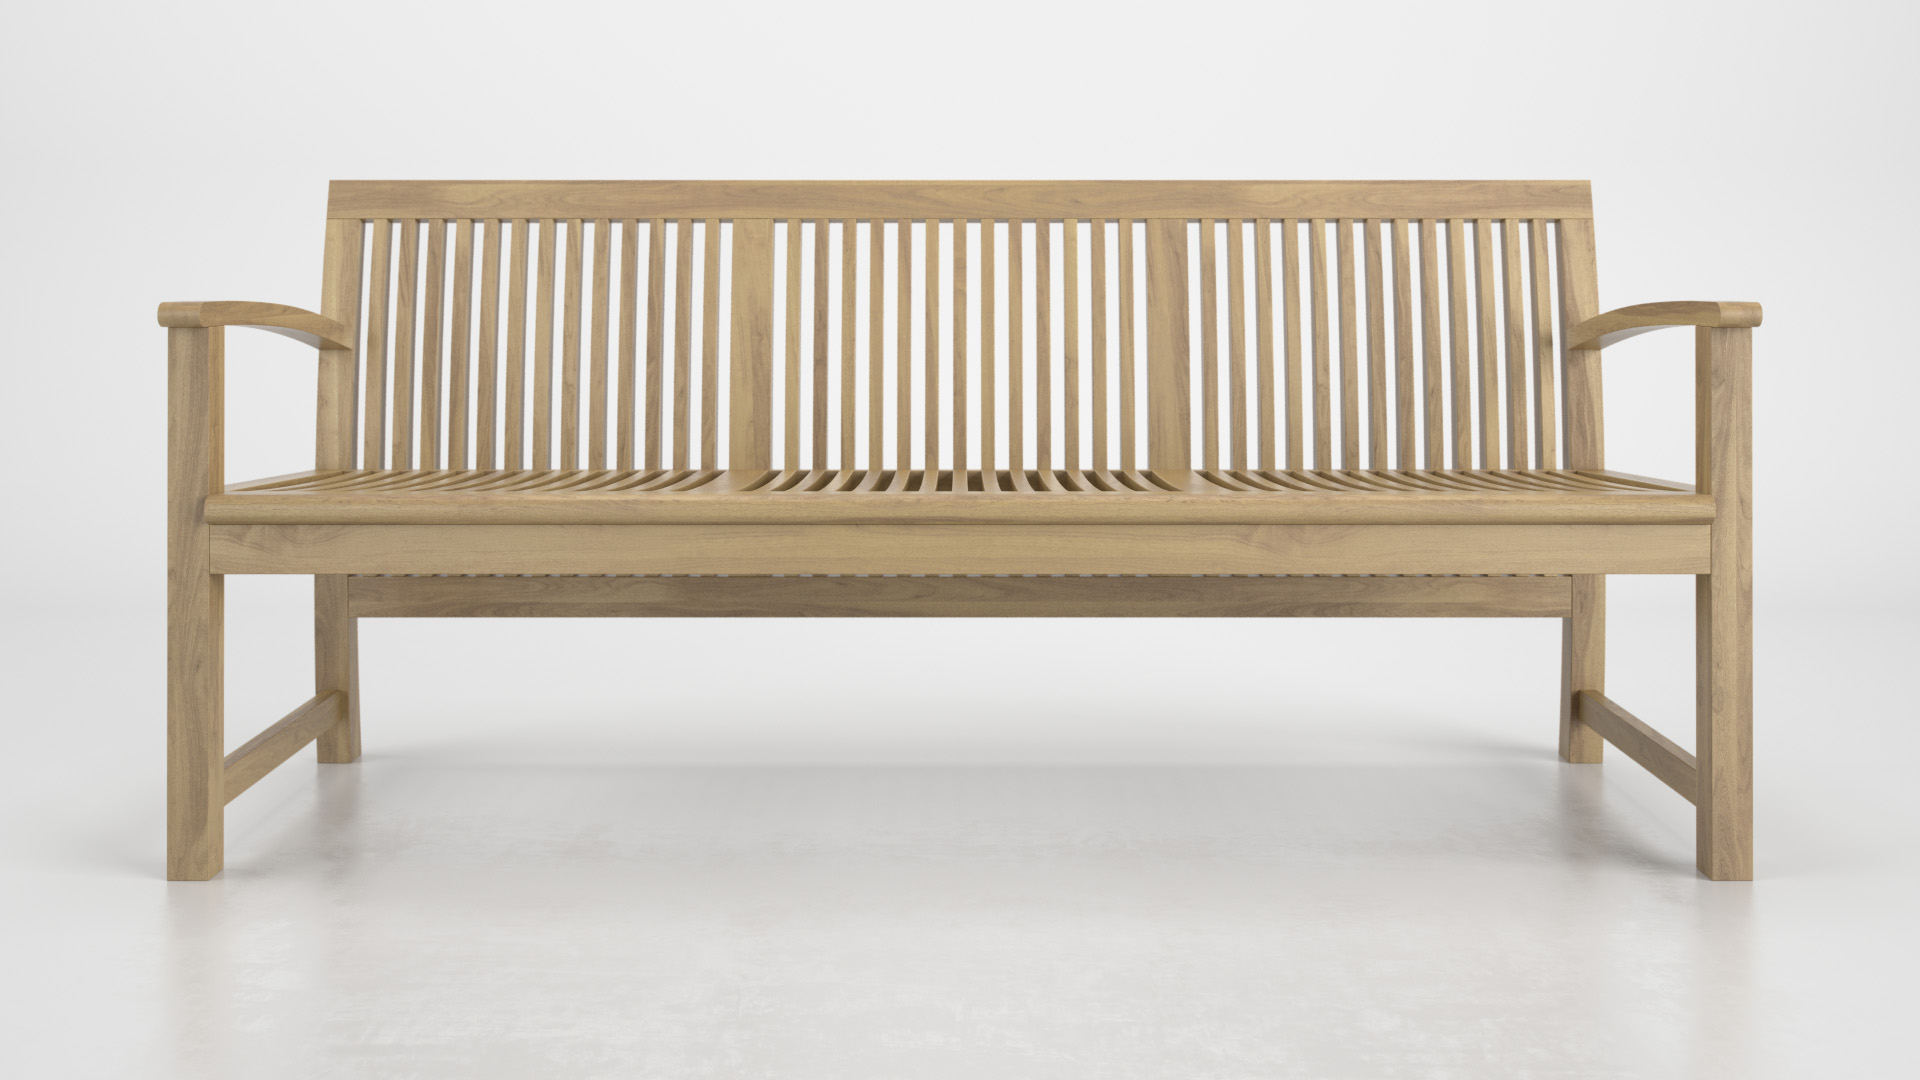 Tribu_Praslin_Bench_WhiteSet_01_0004